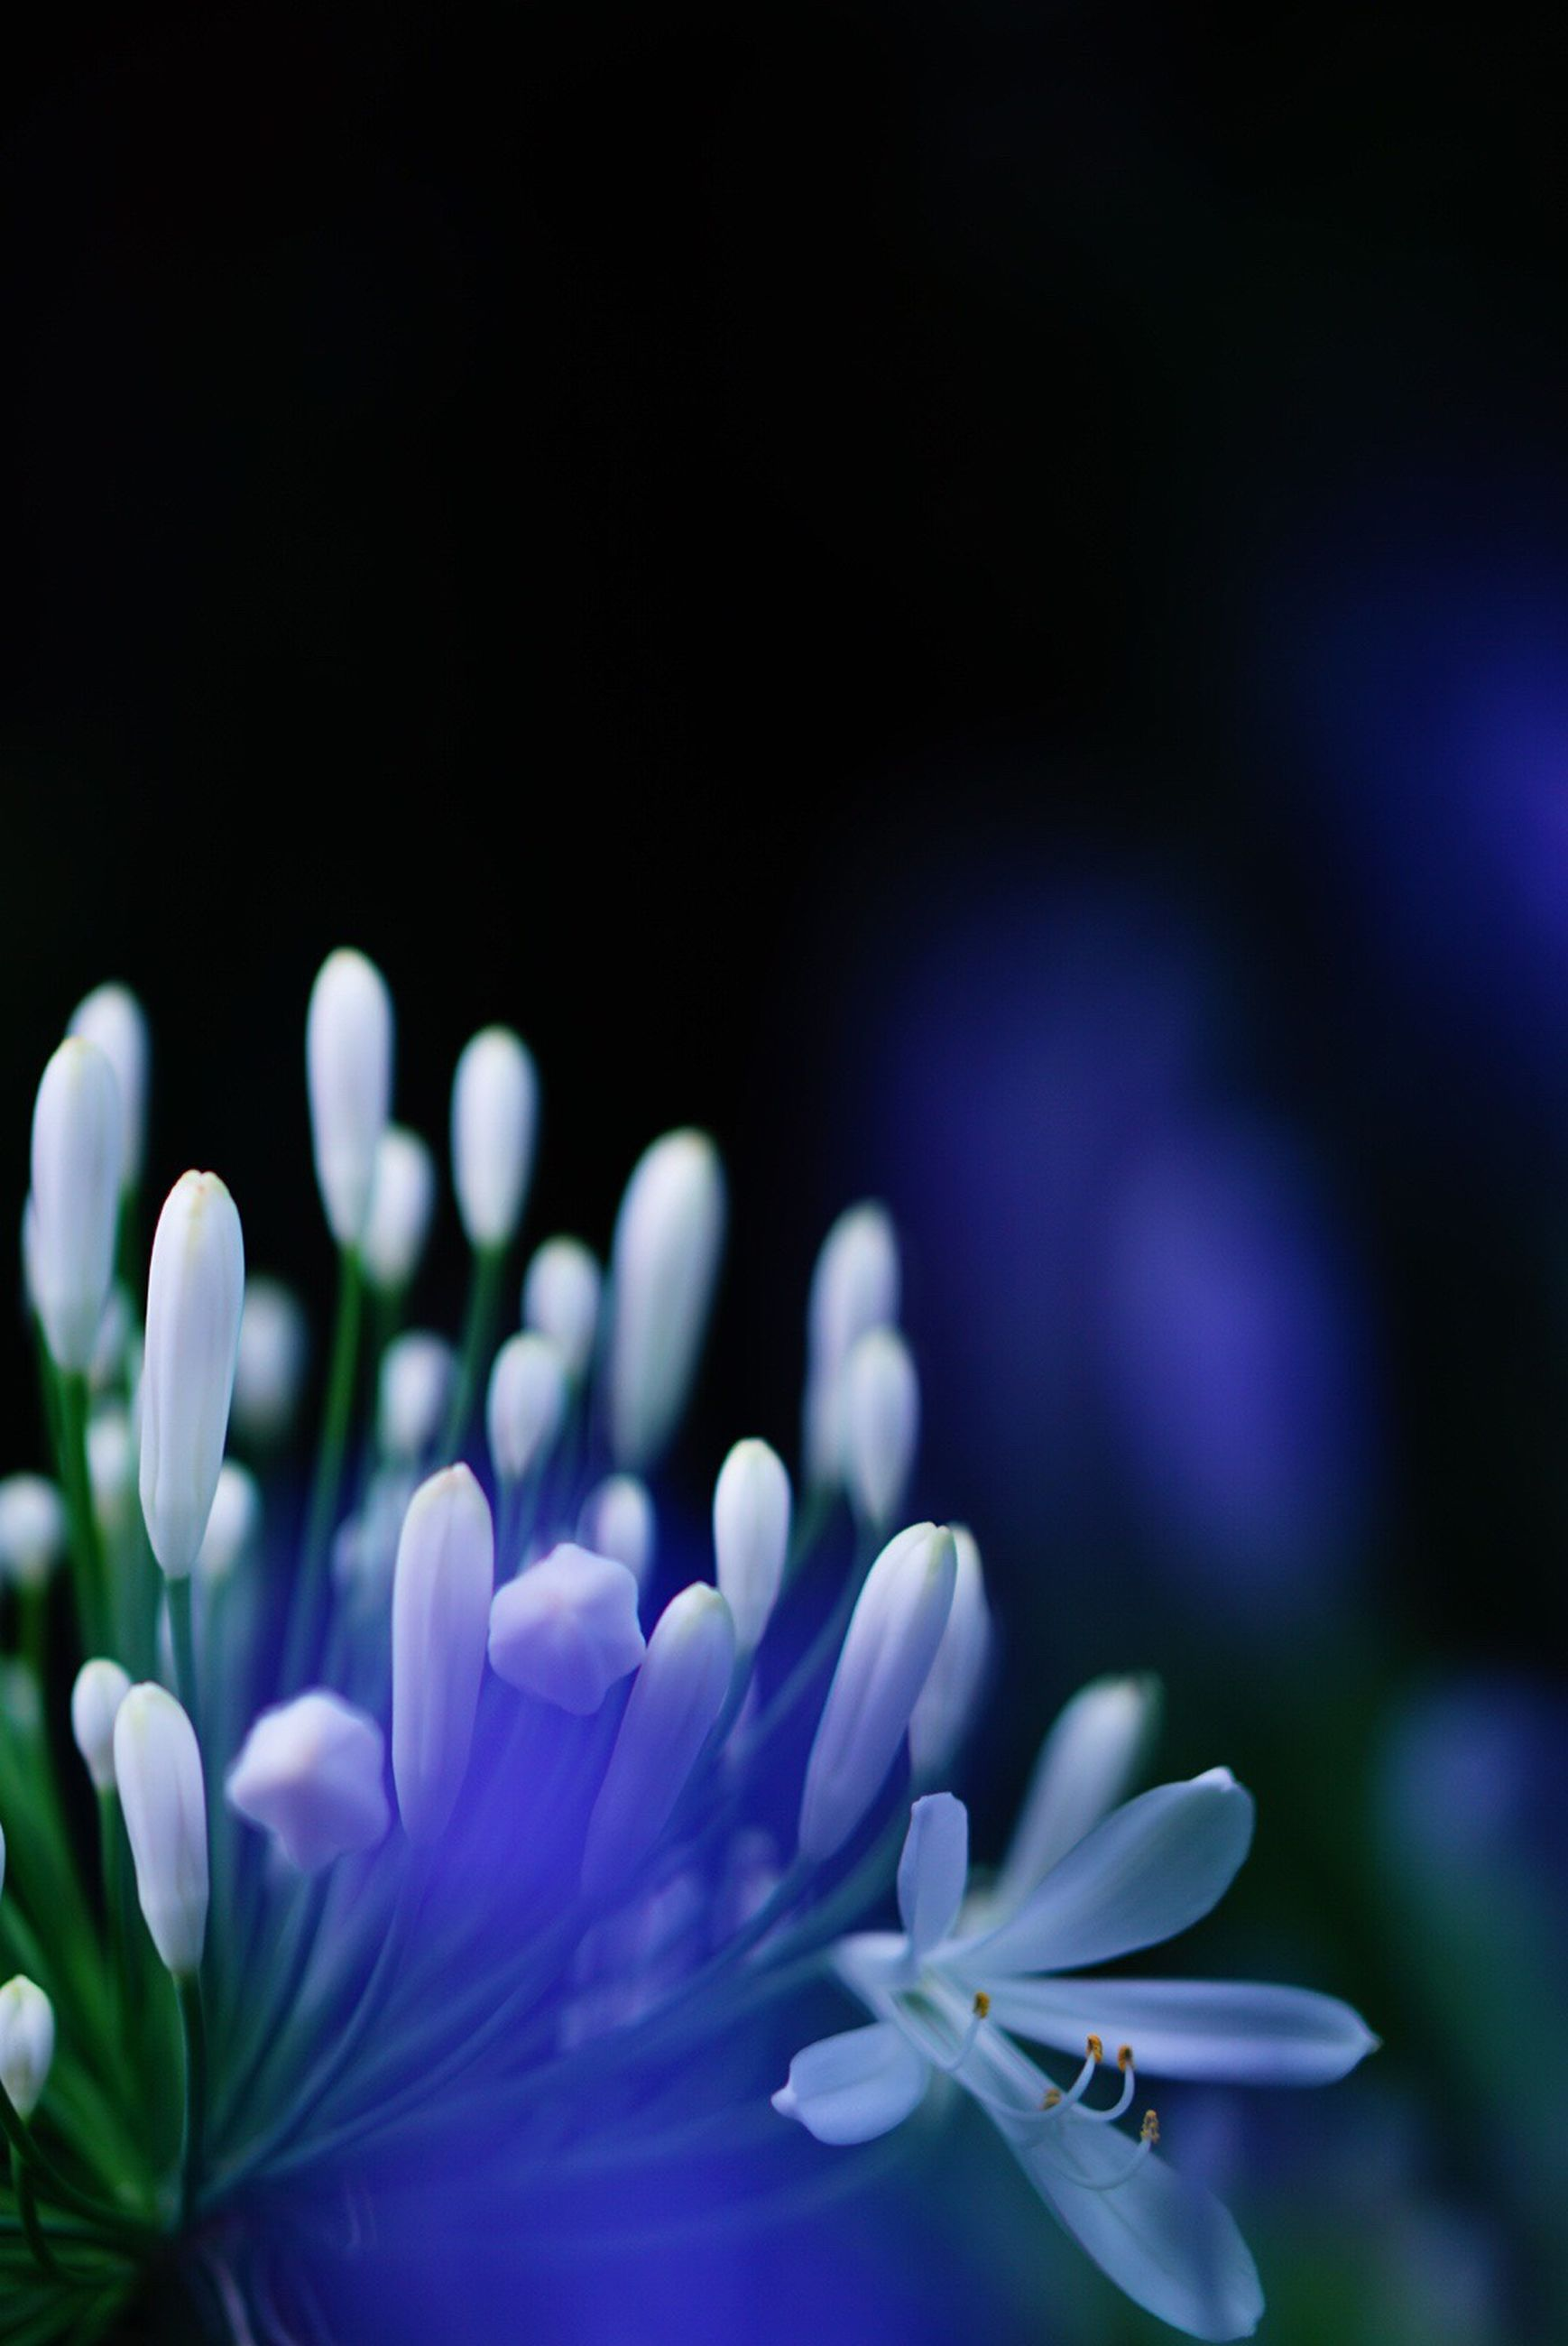 flower, petal, fragility, freshness, growth, beauty in nature, flower head, nature, blooming, close-up, plant, focus on foreground, white color, night, in bloom, purple, outdoors, selective focus, no people, park - man made space